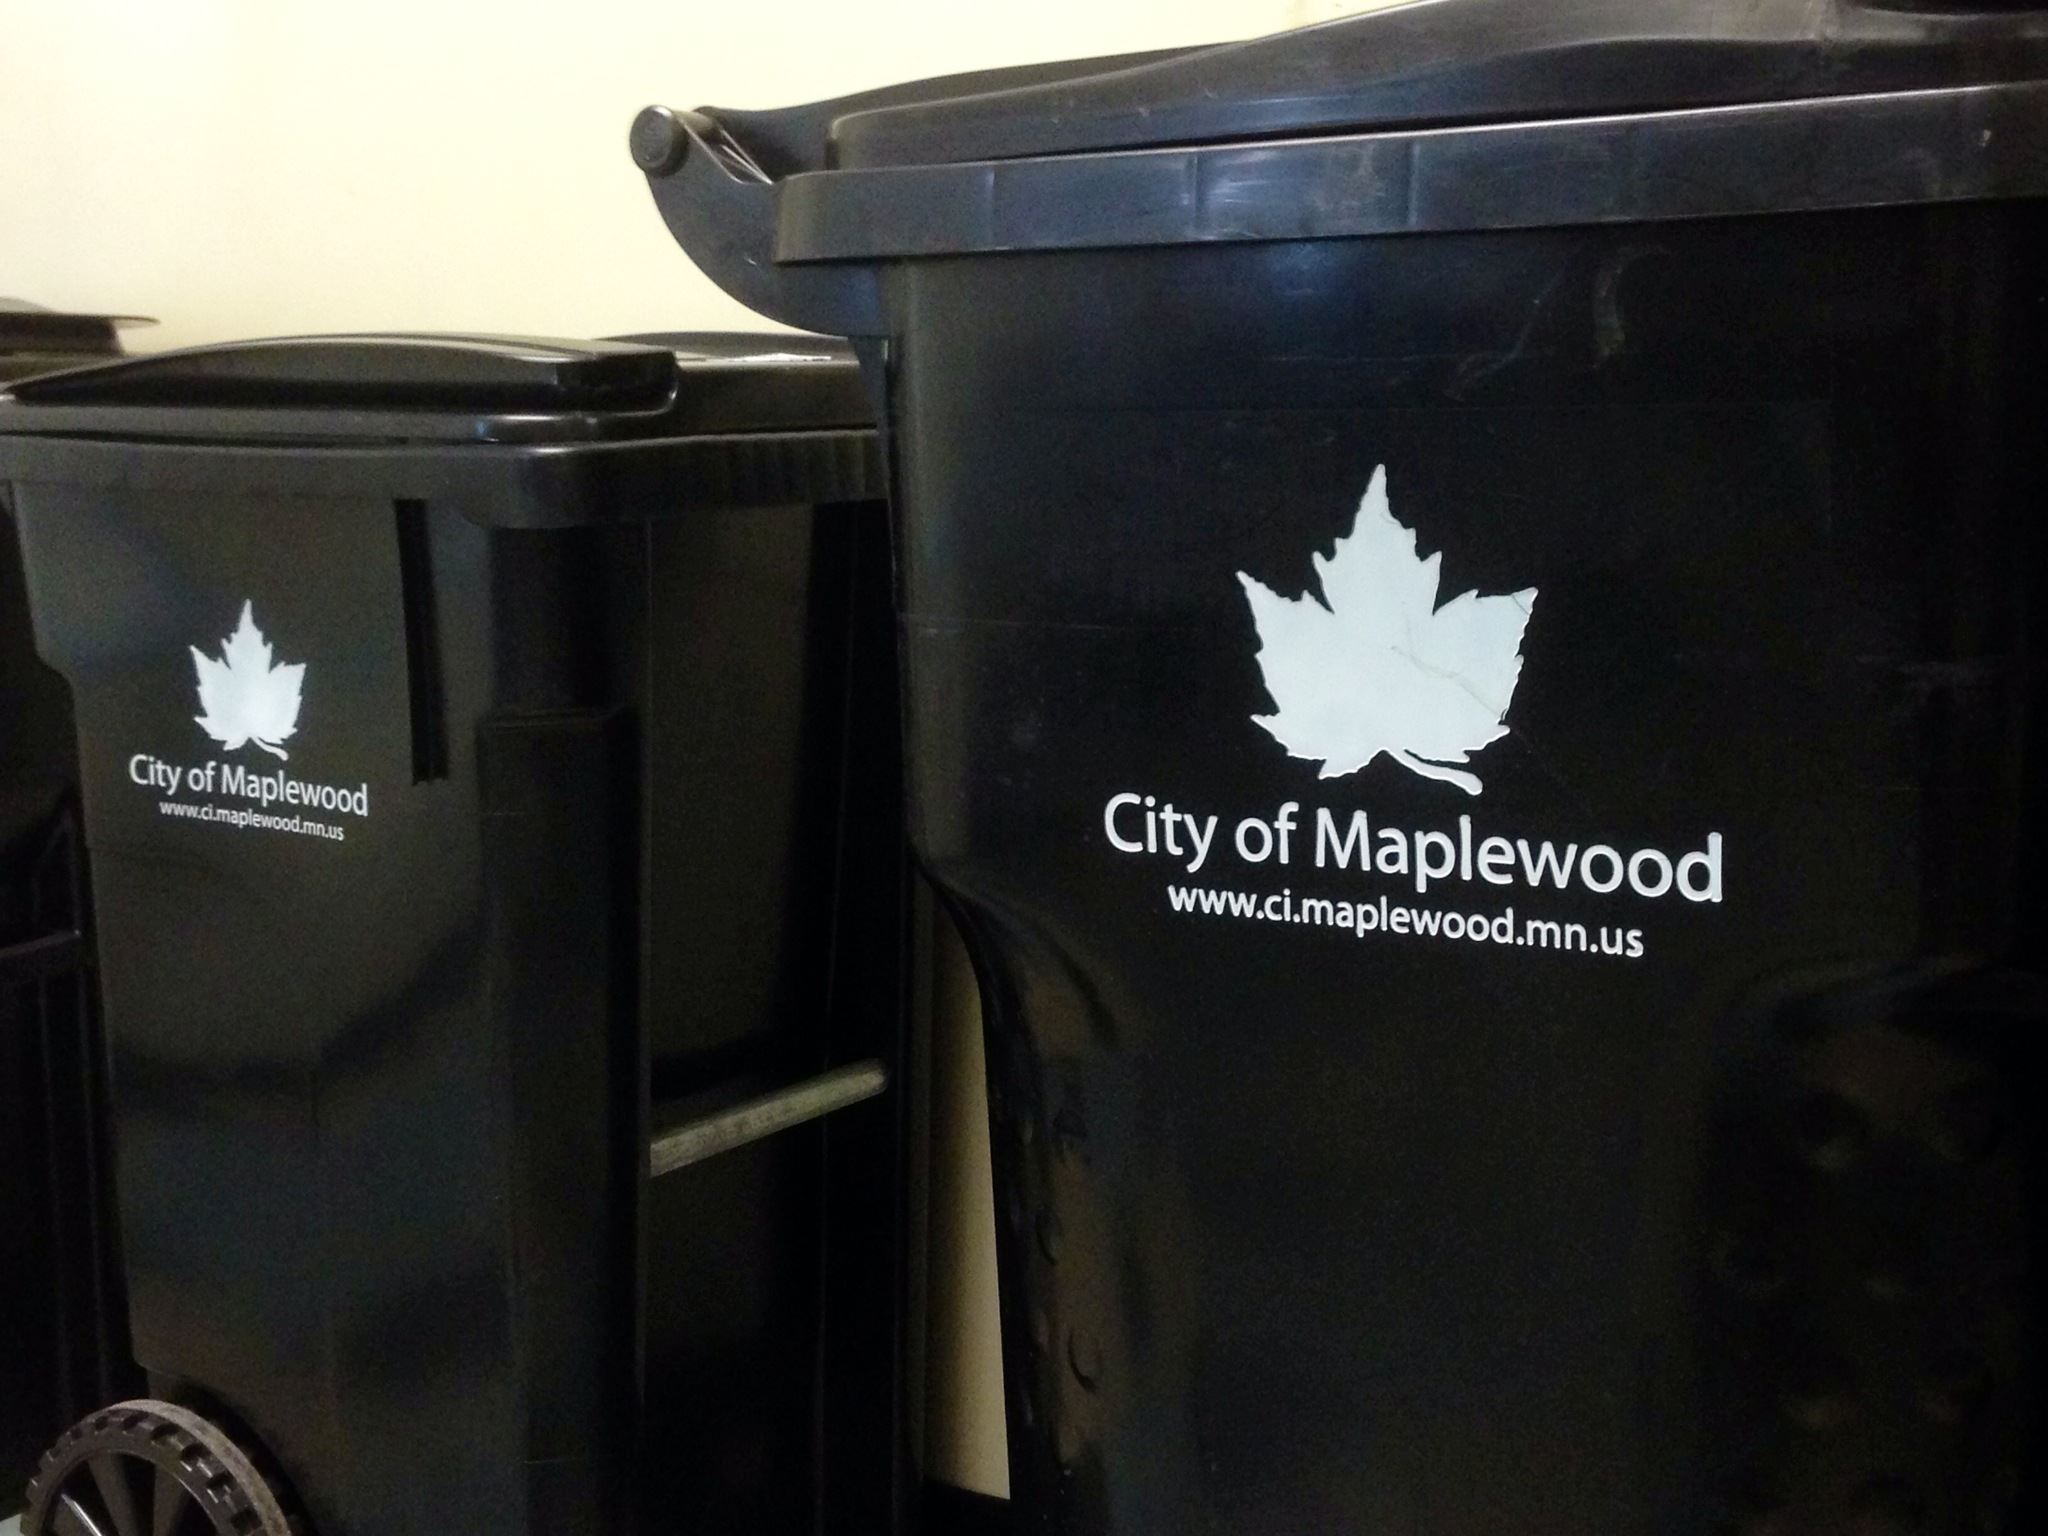 Black City of Maplewood trash totes